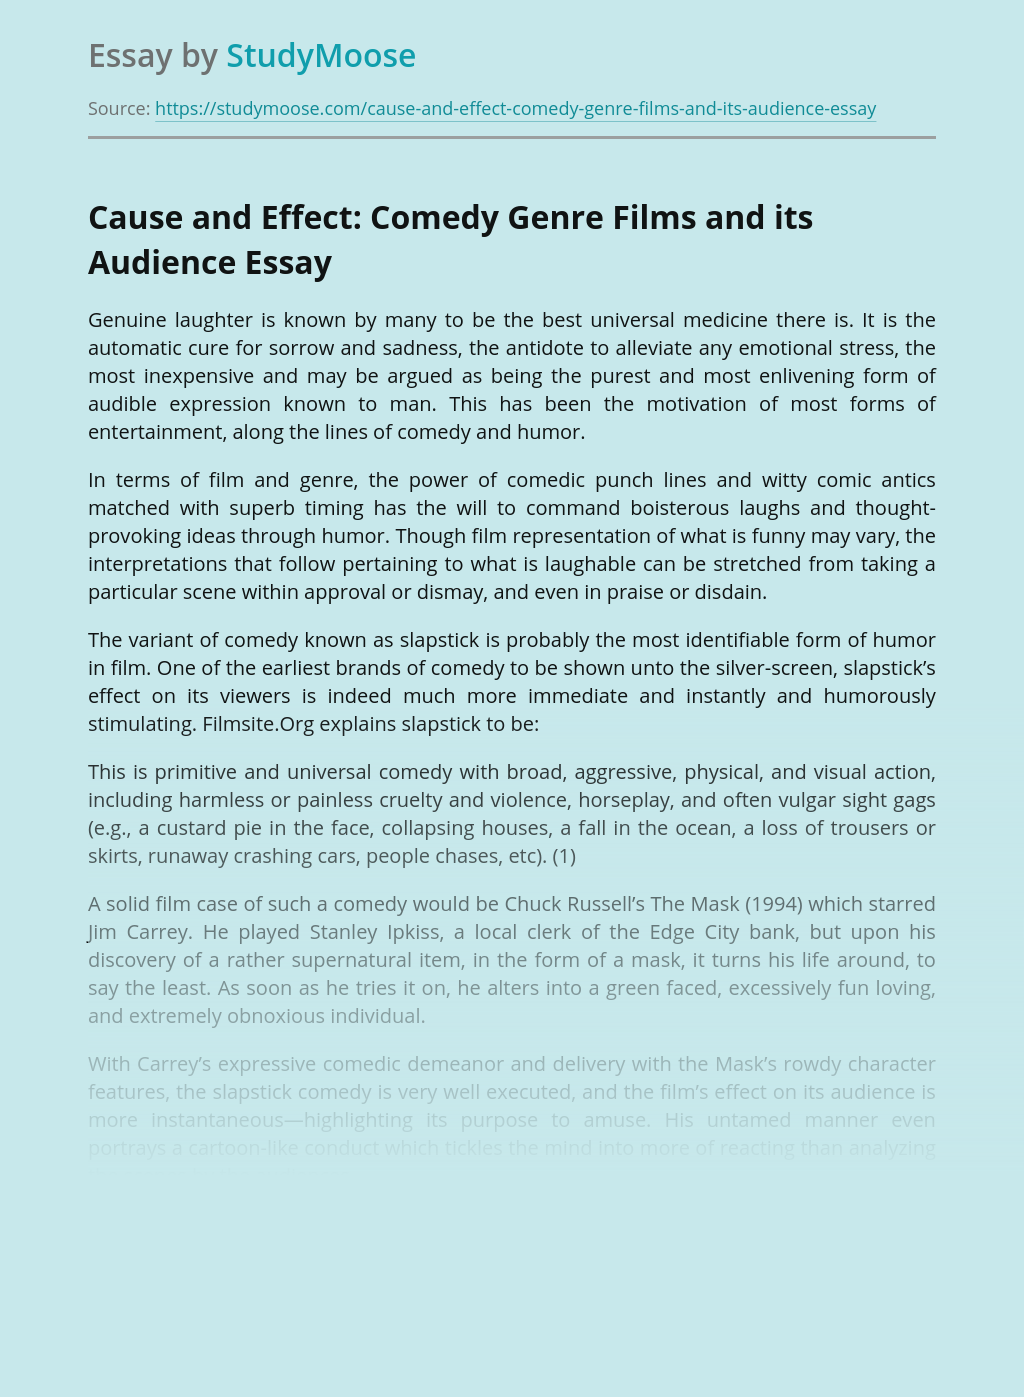 Cause and Effect: Comedy Genre Films and its Audience